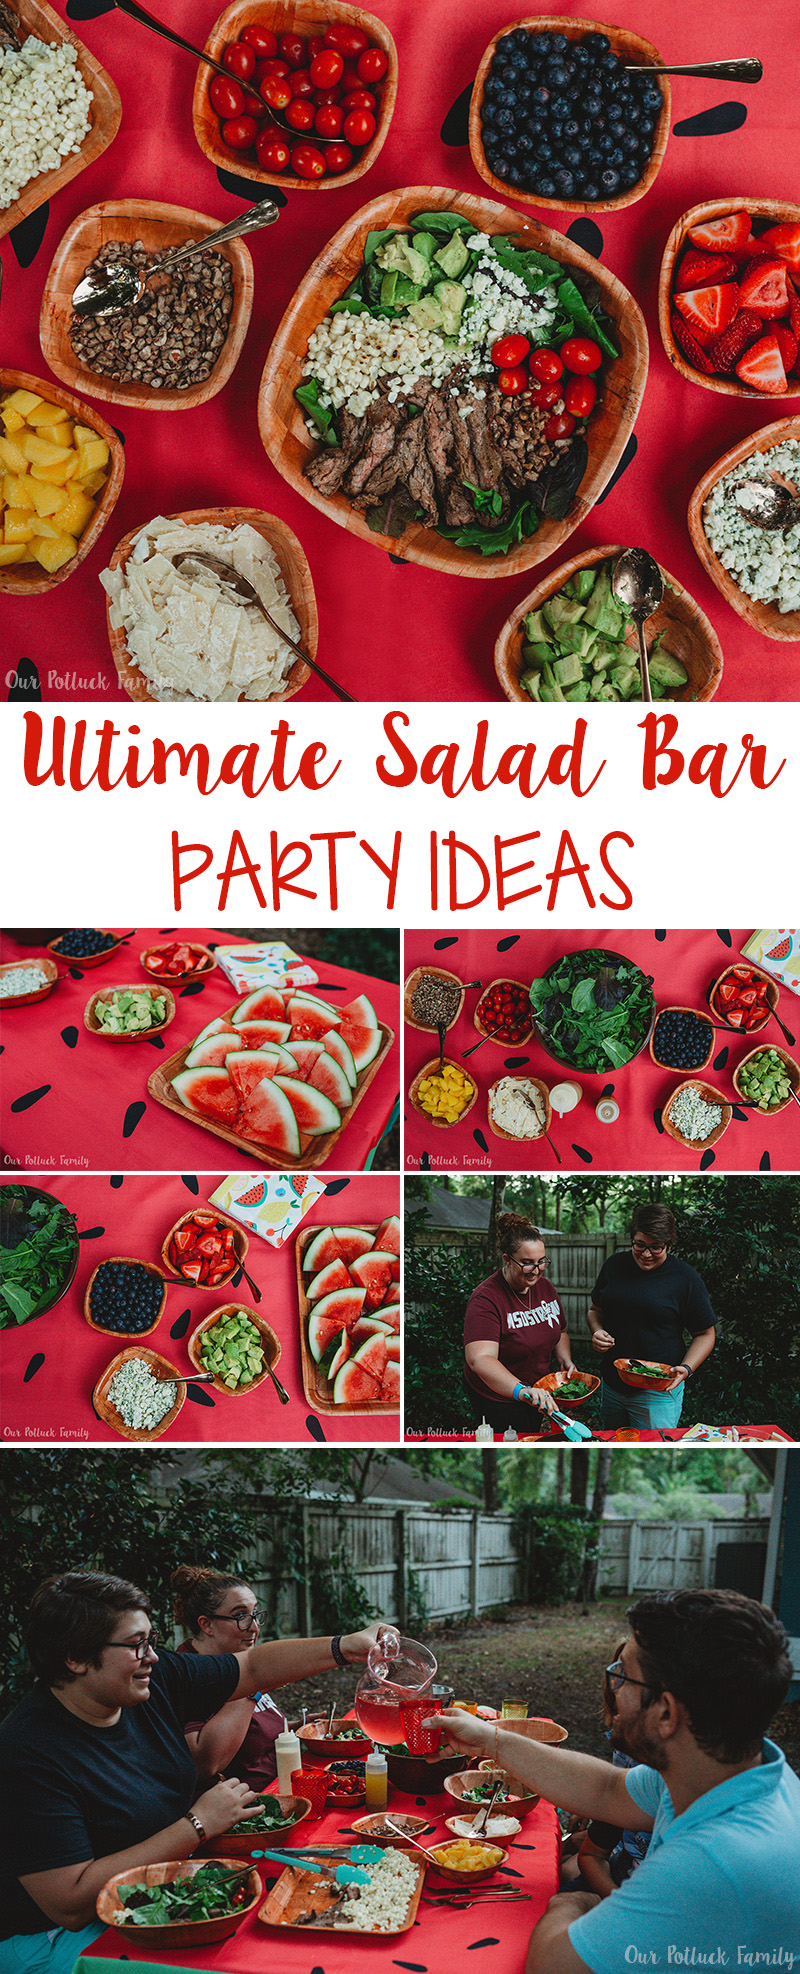 Ultimate Salad Bar Party